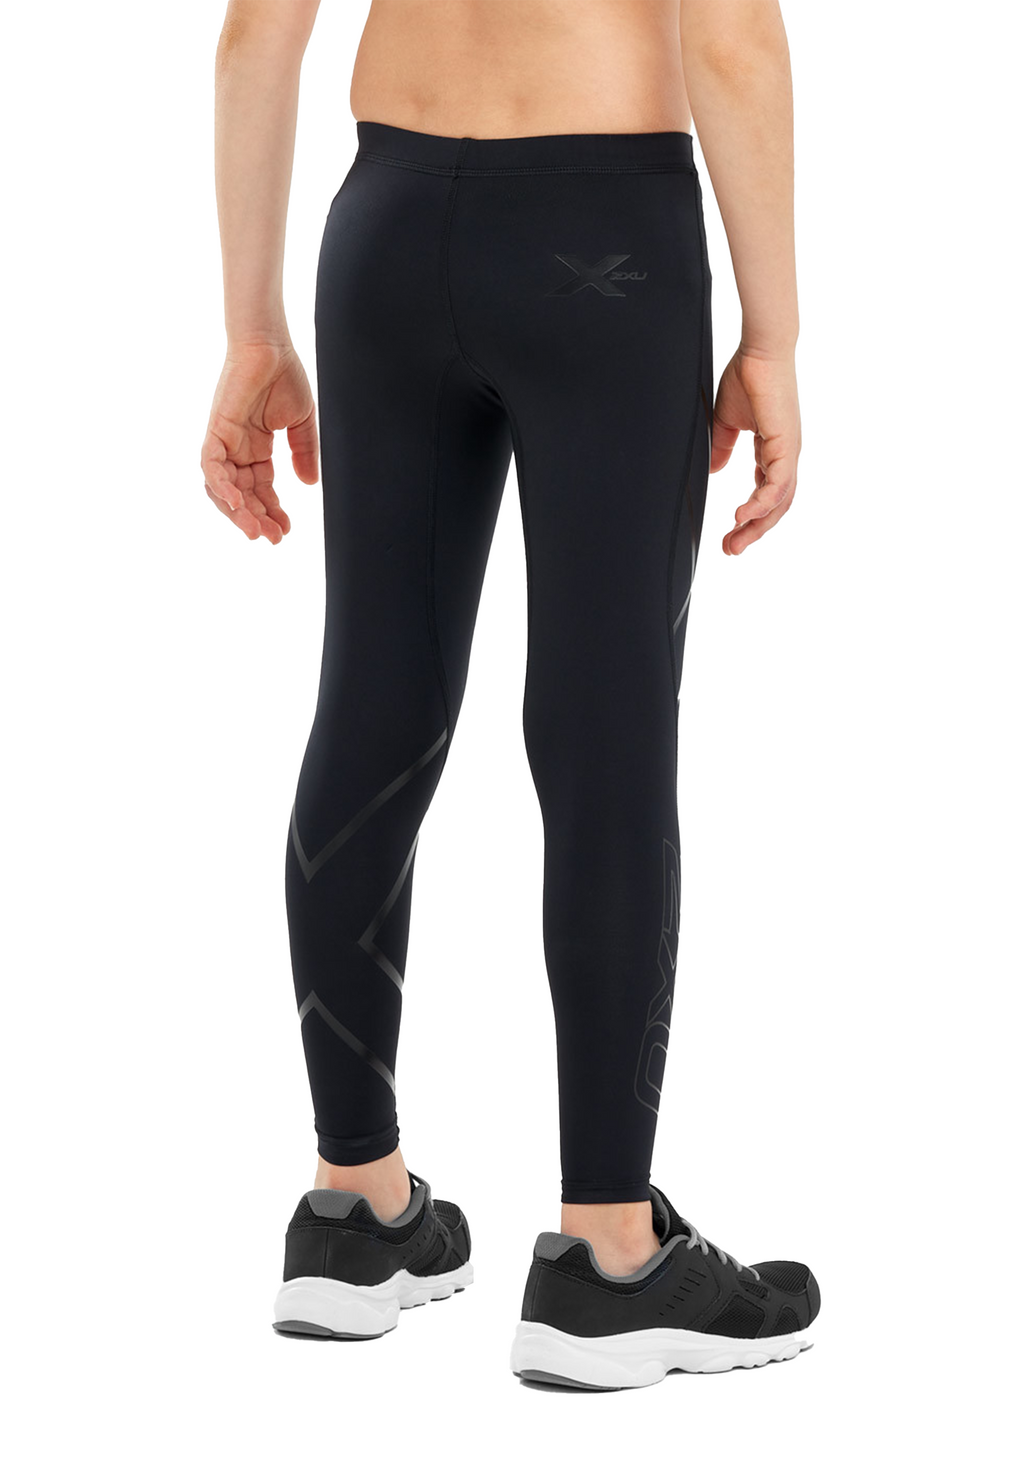 2XU YOUTH COMPRESSION TIGHTS <br> CA2549B